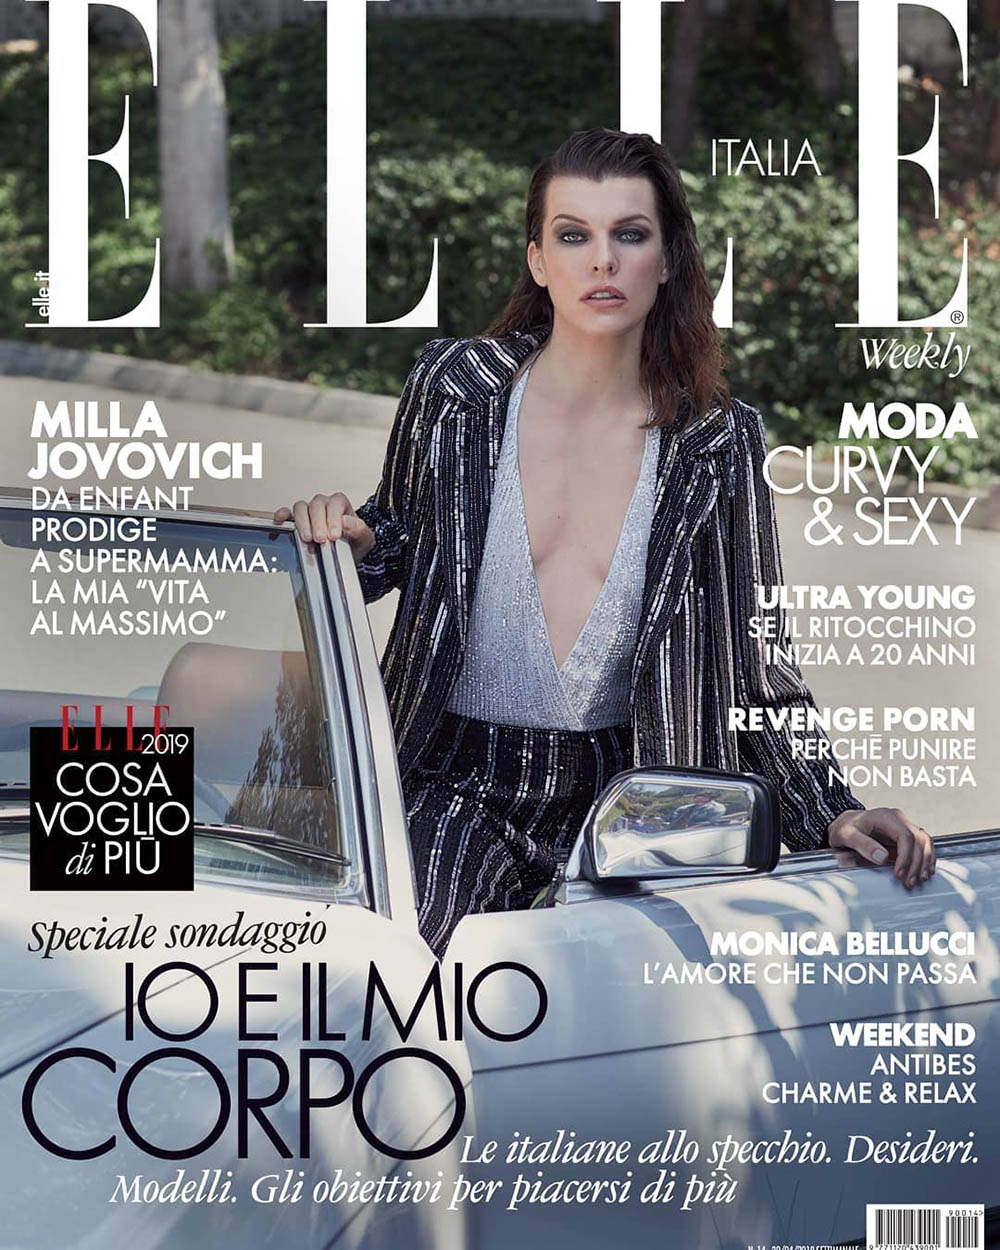 Milla Jovovich covers Elle Italia April 12th, 2019 by Laura Sciacovelli